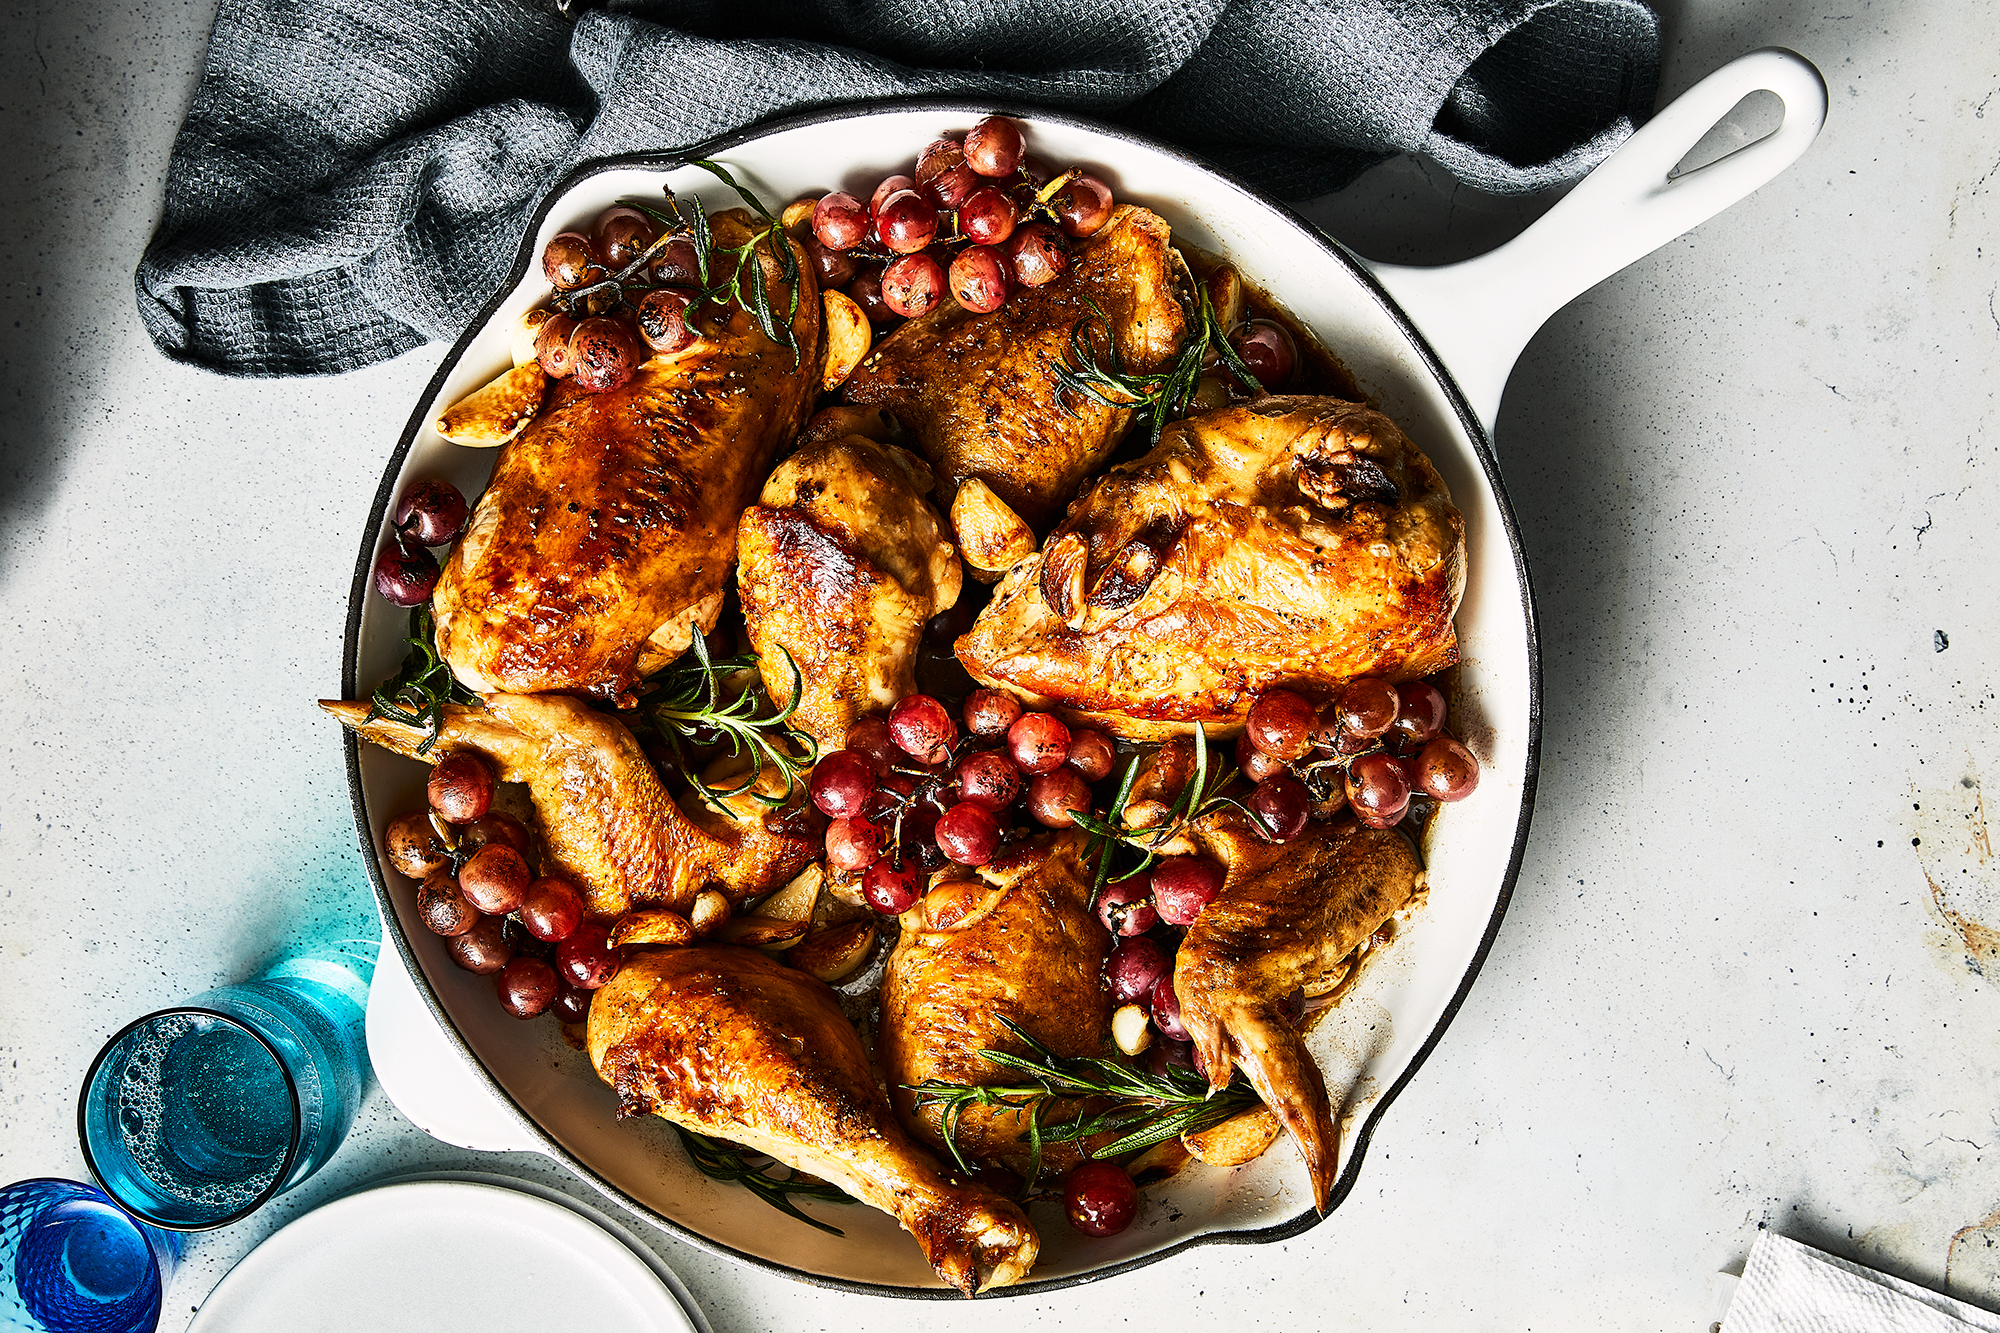 Chicken with Roasted Grapes, Garlic and Rosemary